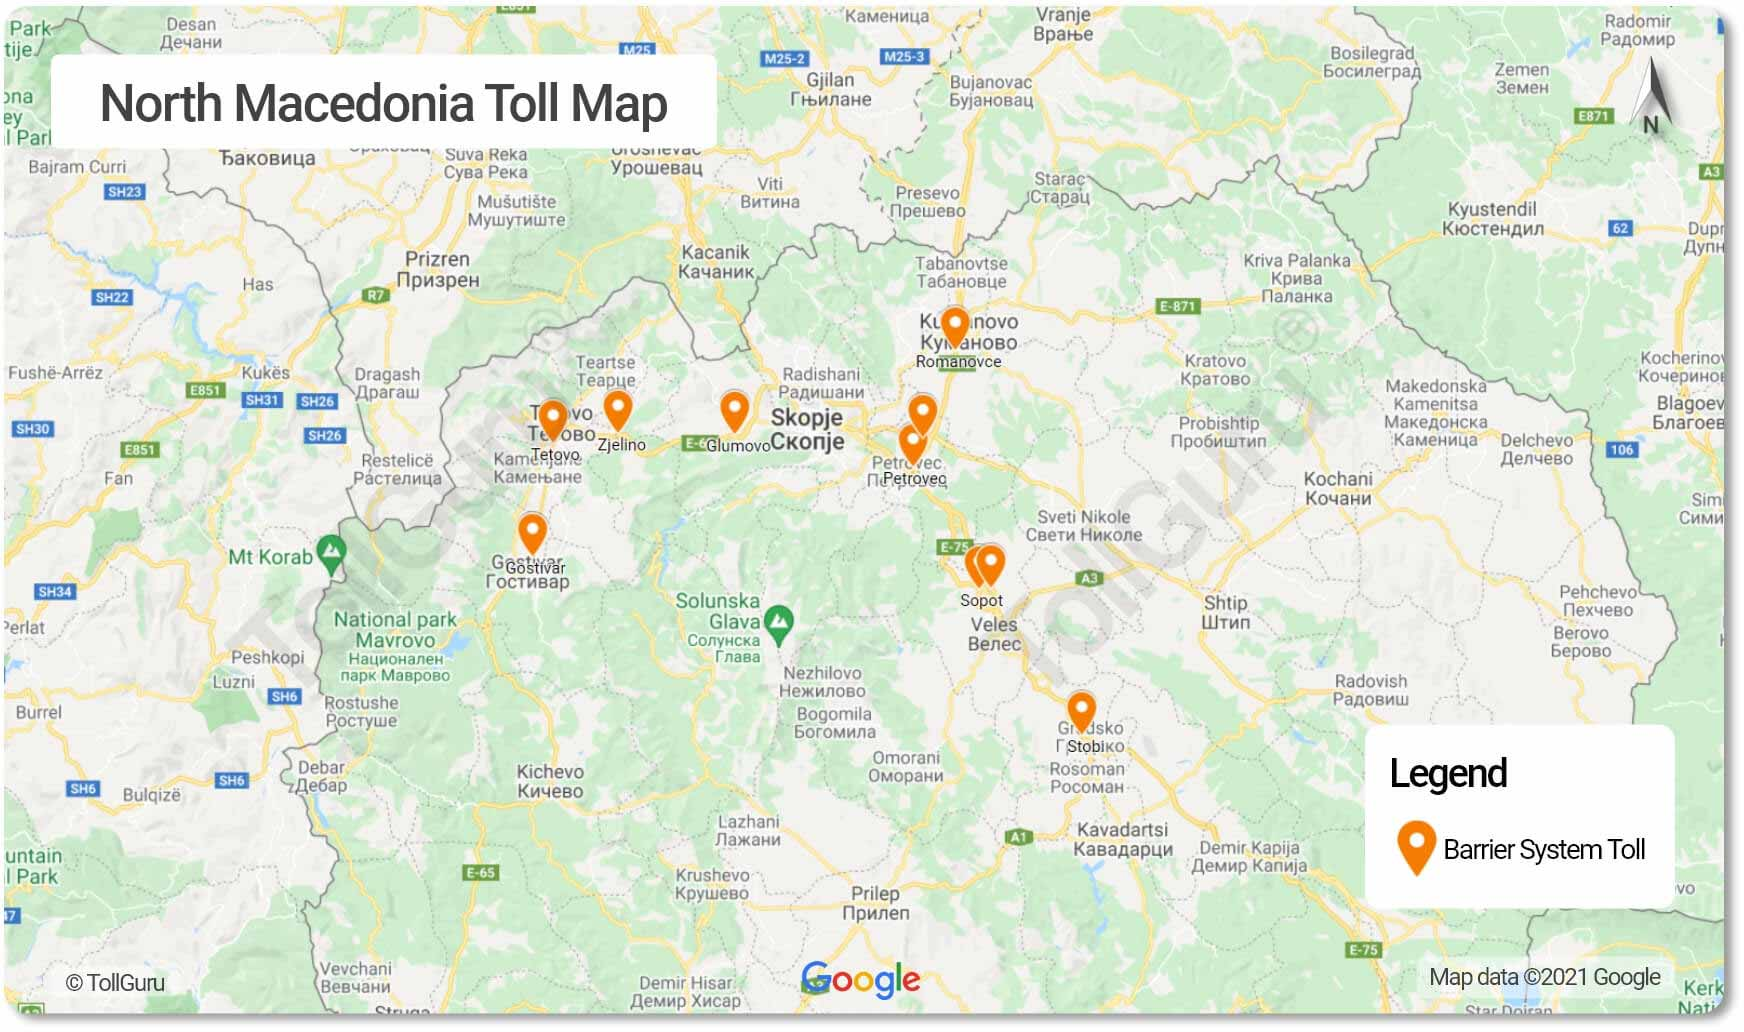 The toll plazas in North Macedonia for all the motorways including A2, A1, and A4 where tolls must be paid in cash only.